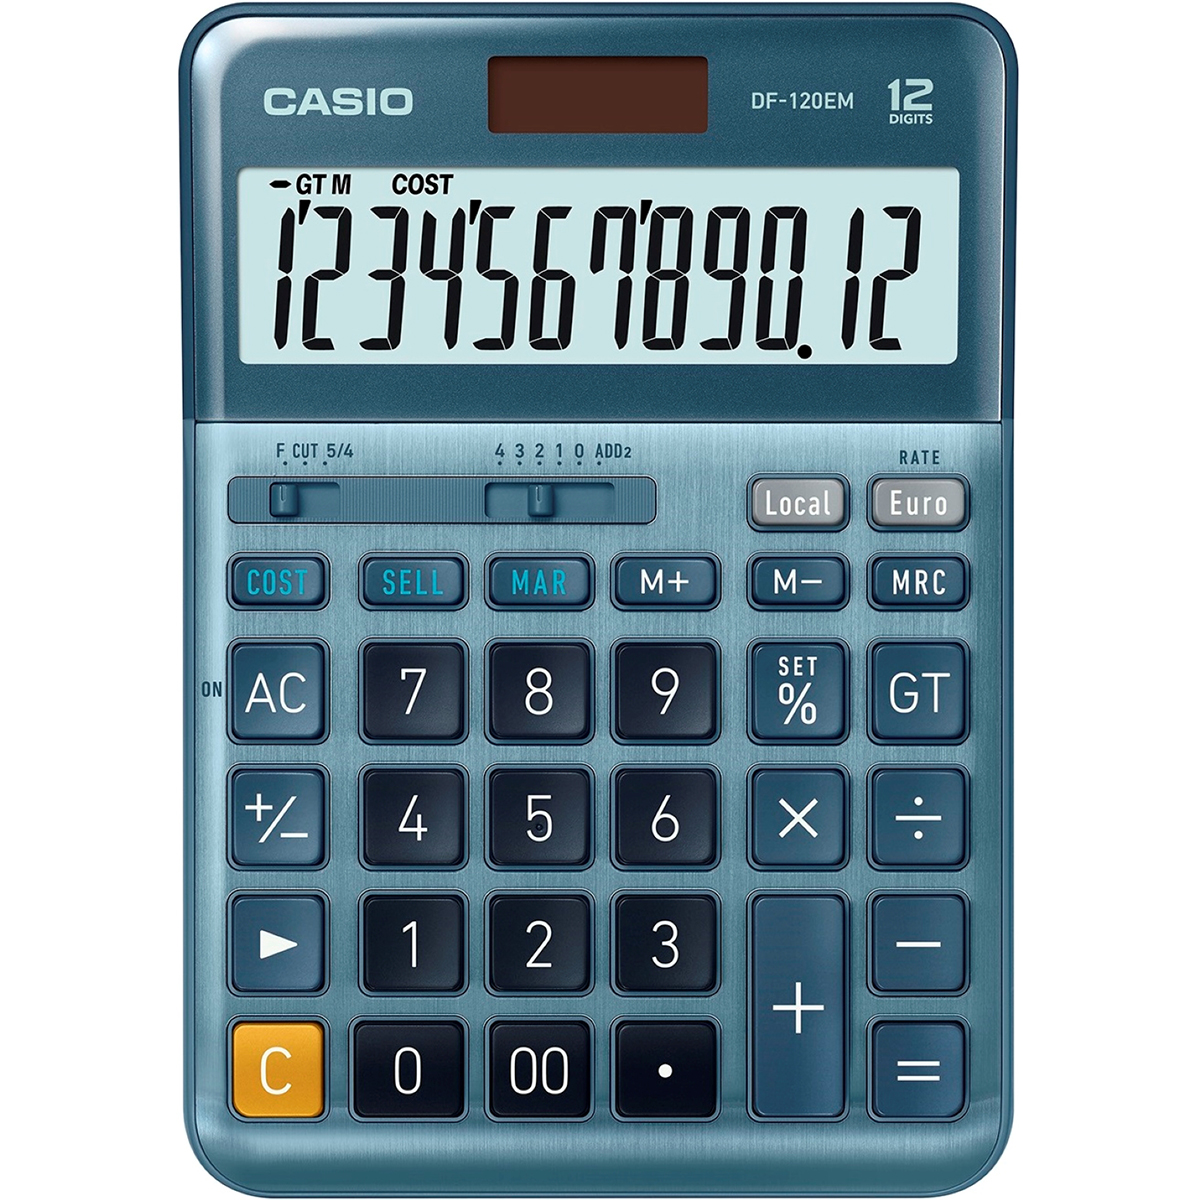 Casio DF-120EM Desktop Tax Calculator